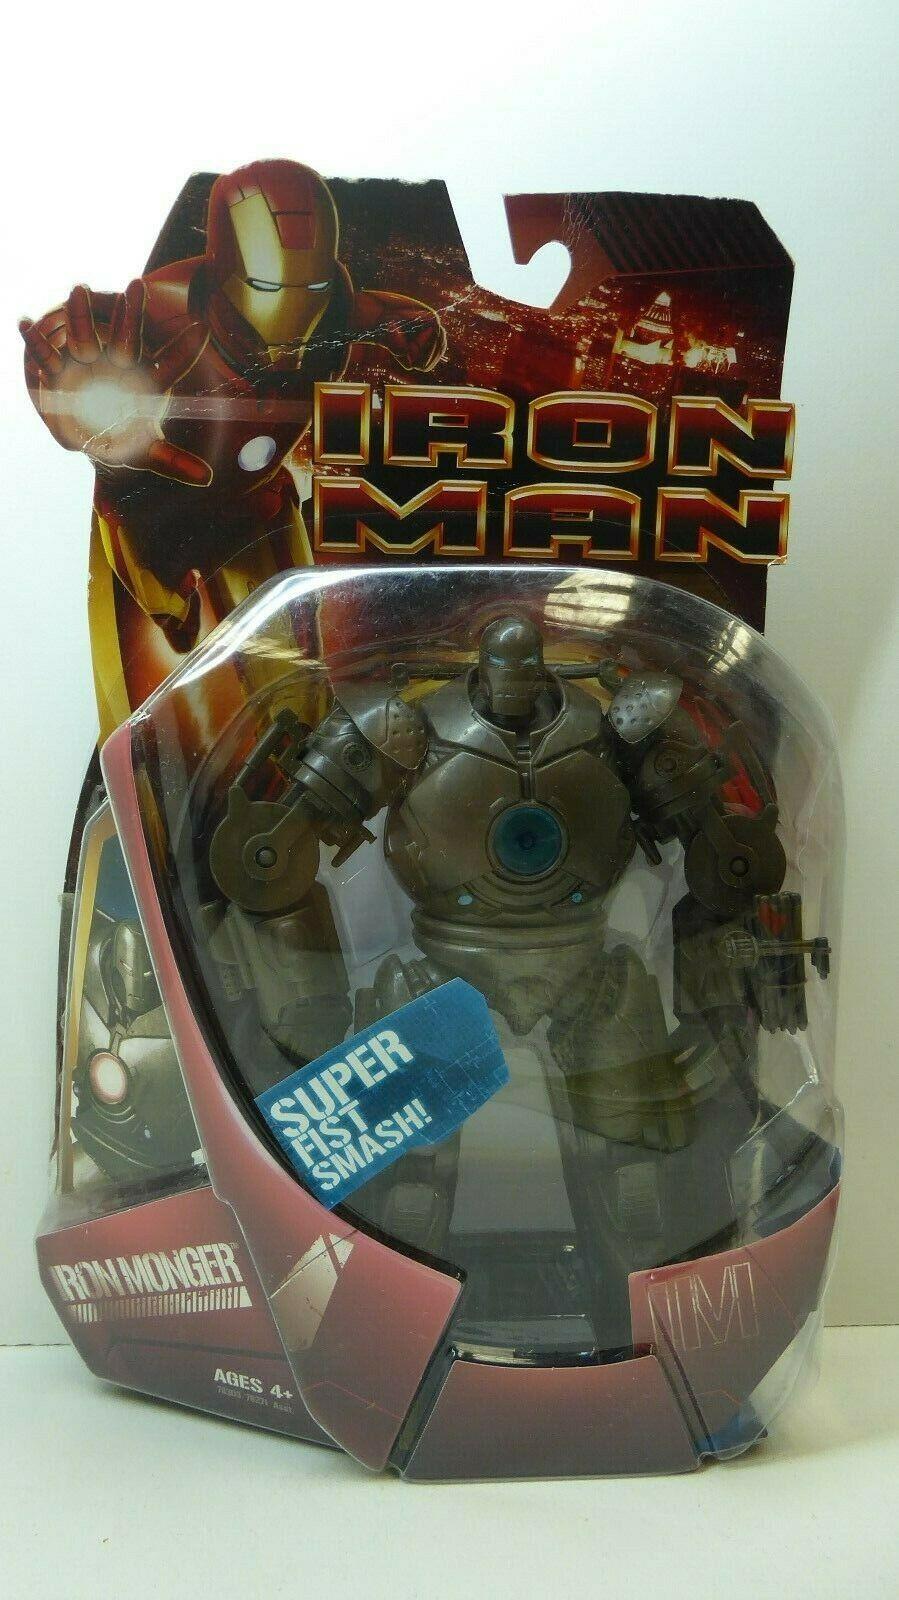 VINTAGE MARVEL IRON homme MONGER  2008 SERIES FIGURE HASBRO ACTION DOLL  magasin vente sortie